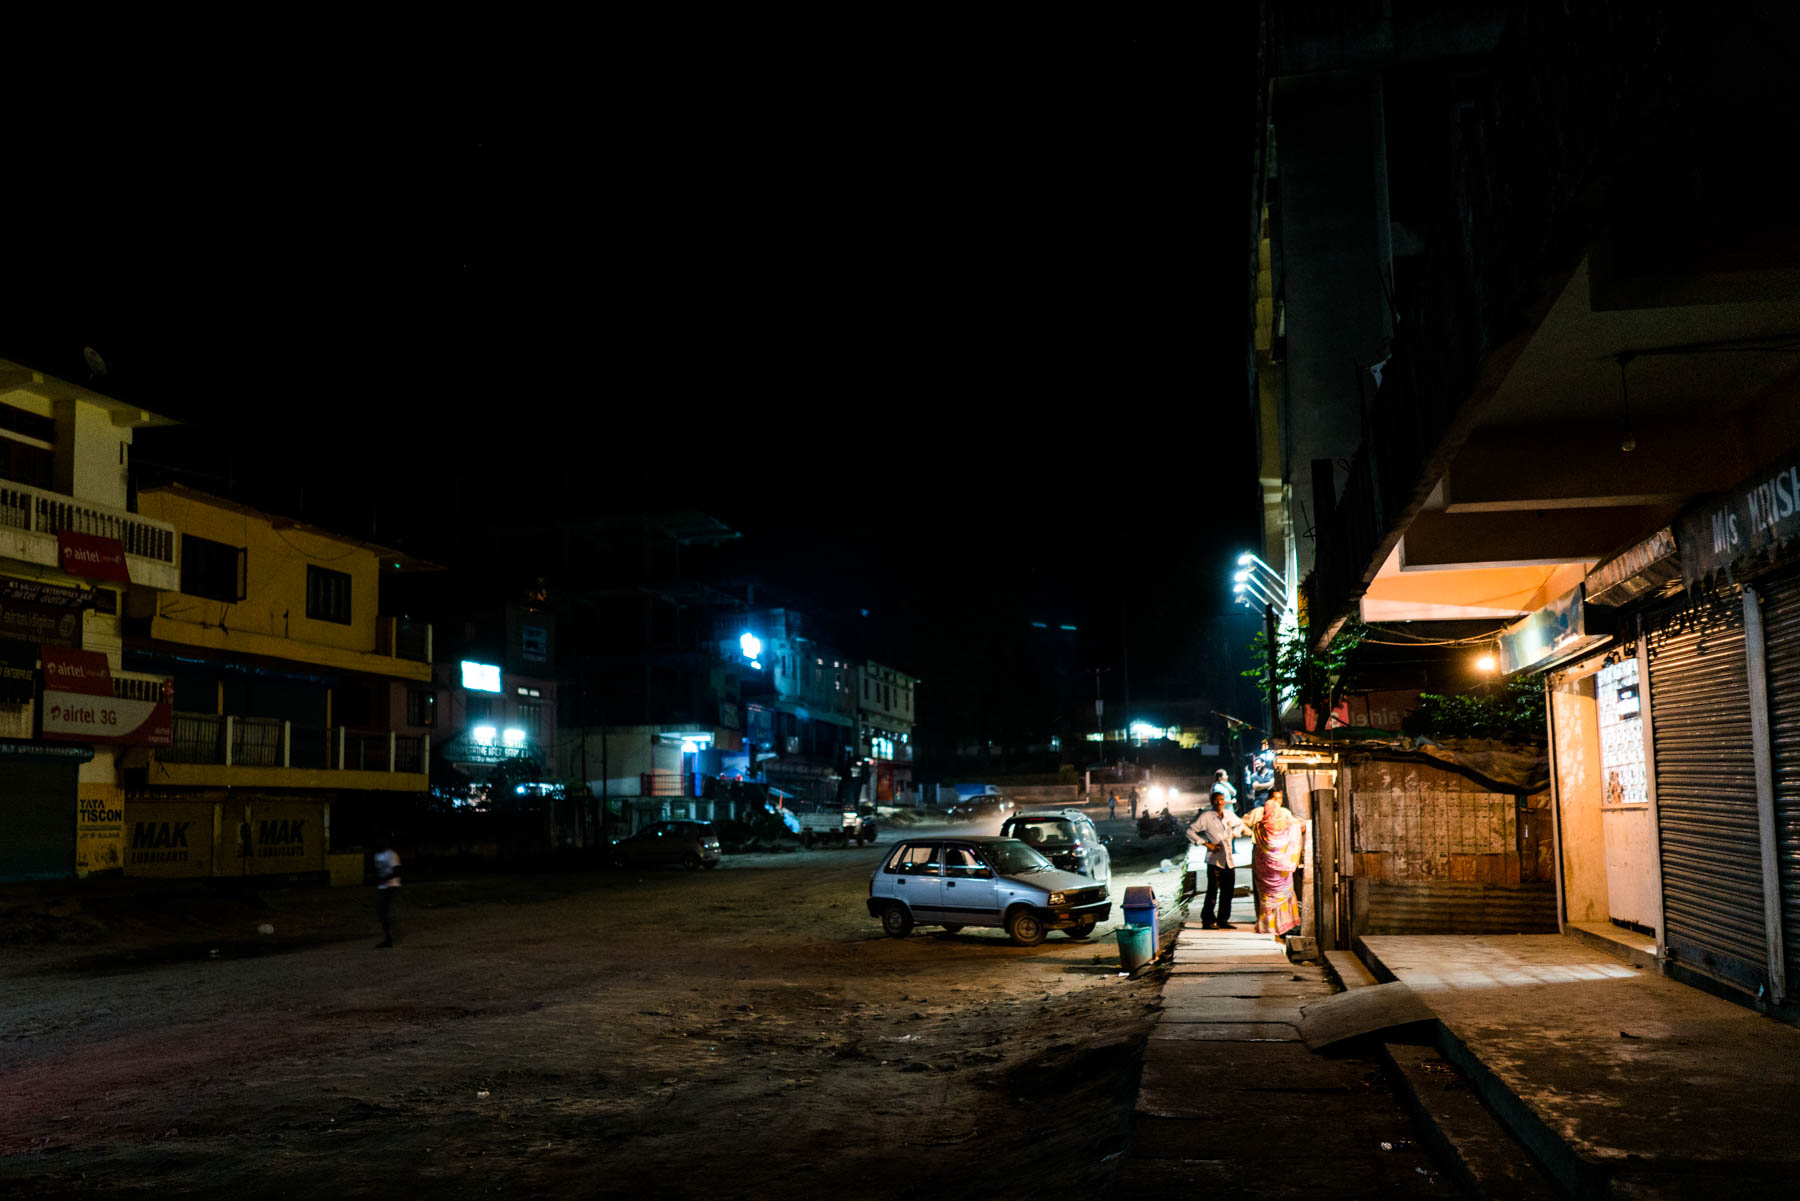 Backpacking in Arunachal Pradesh travel guide - Early closing time in Along - Lost With Purpose